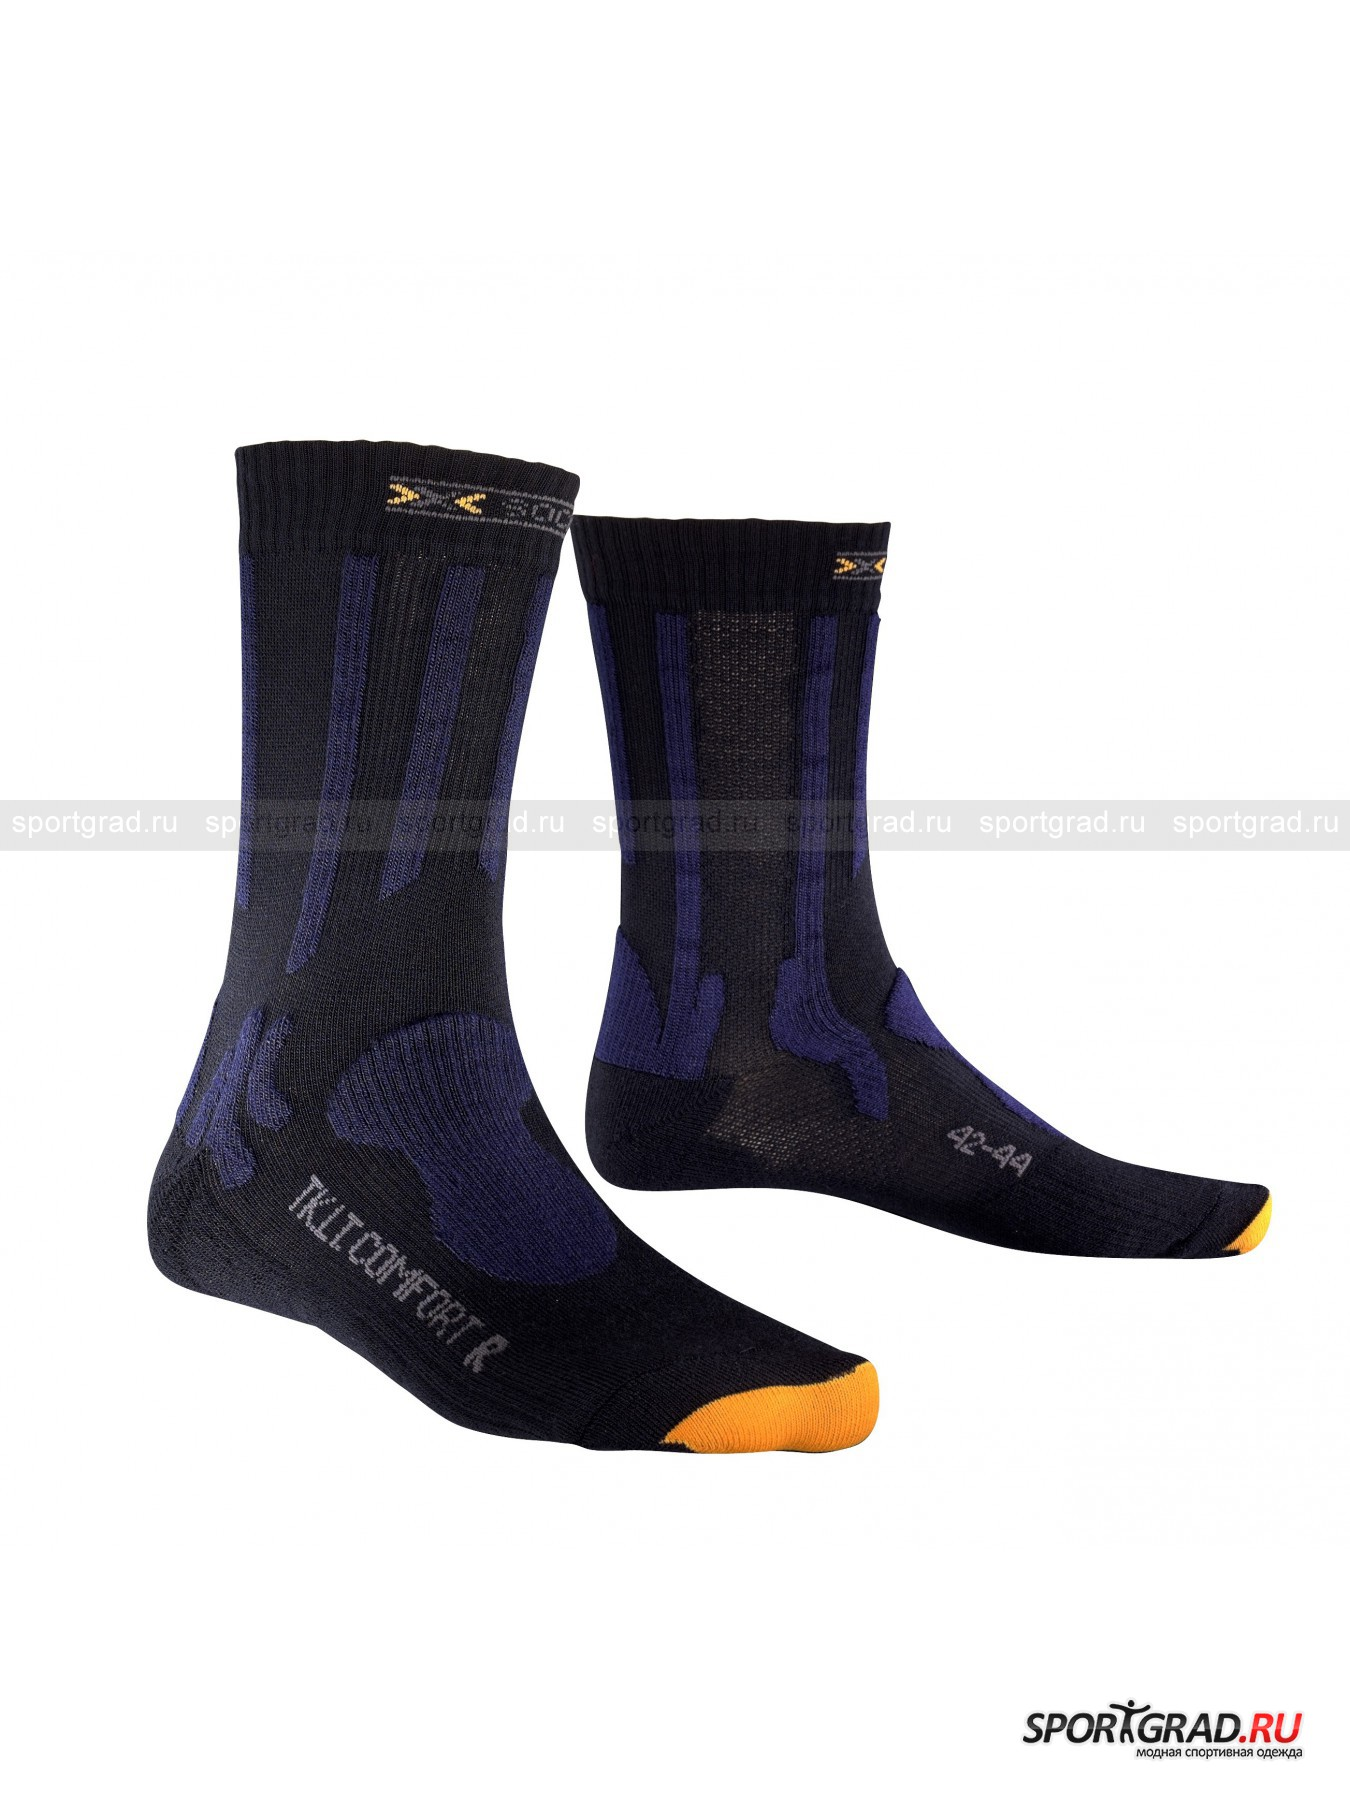 ����� ������� Trekking Light & Comfort X-SOCKS